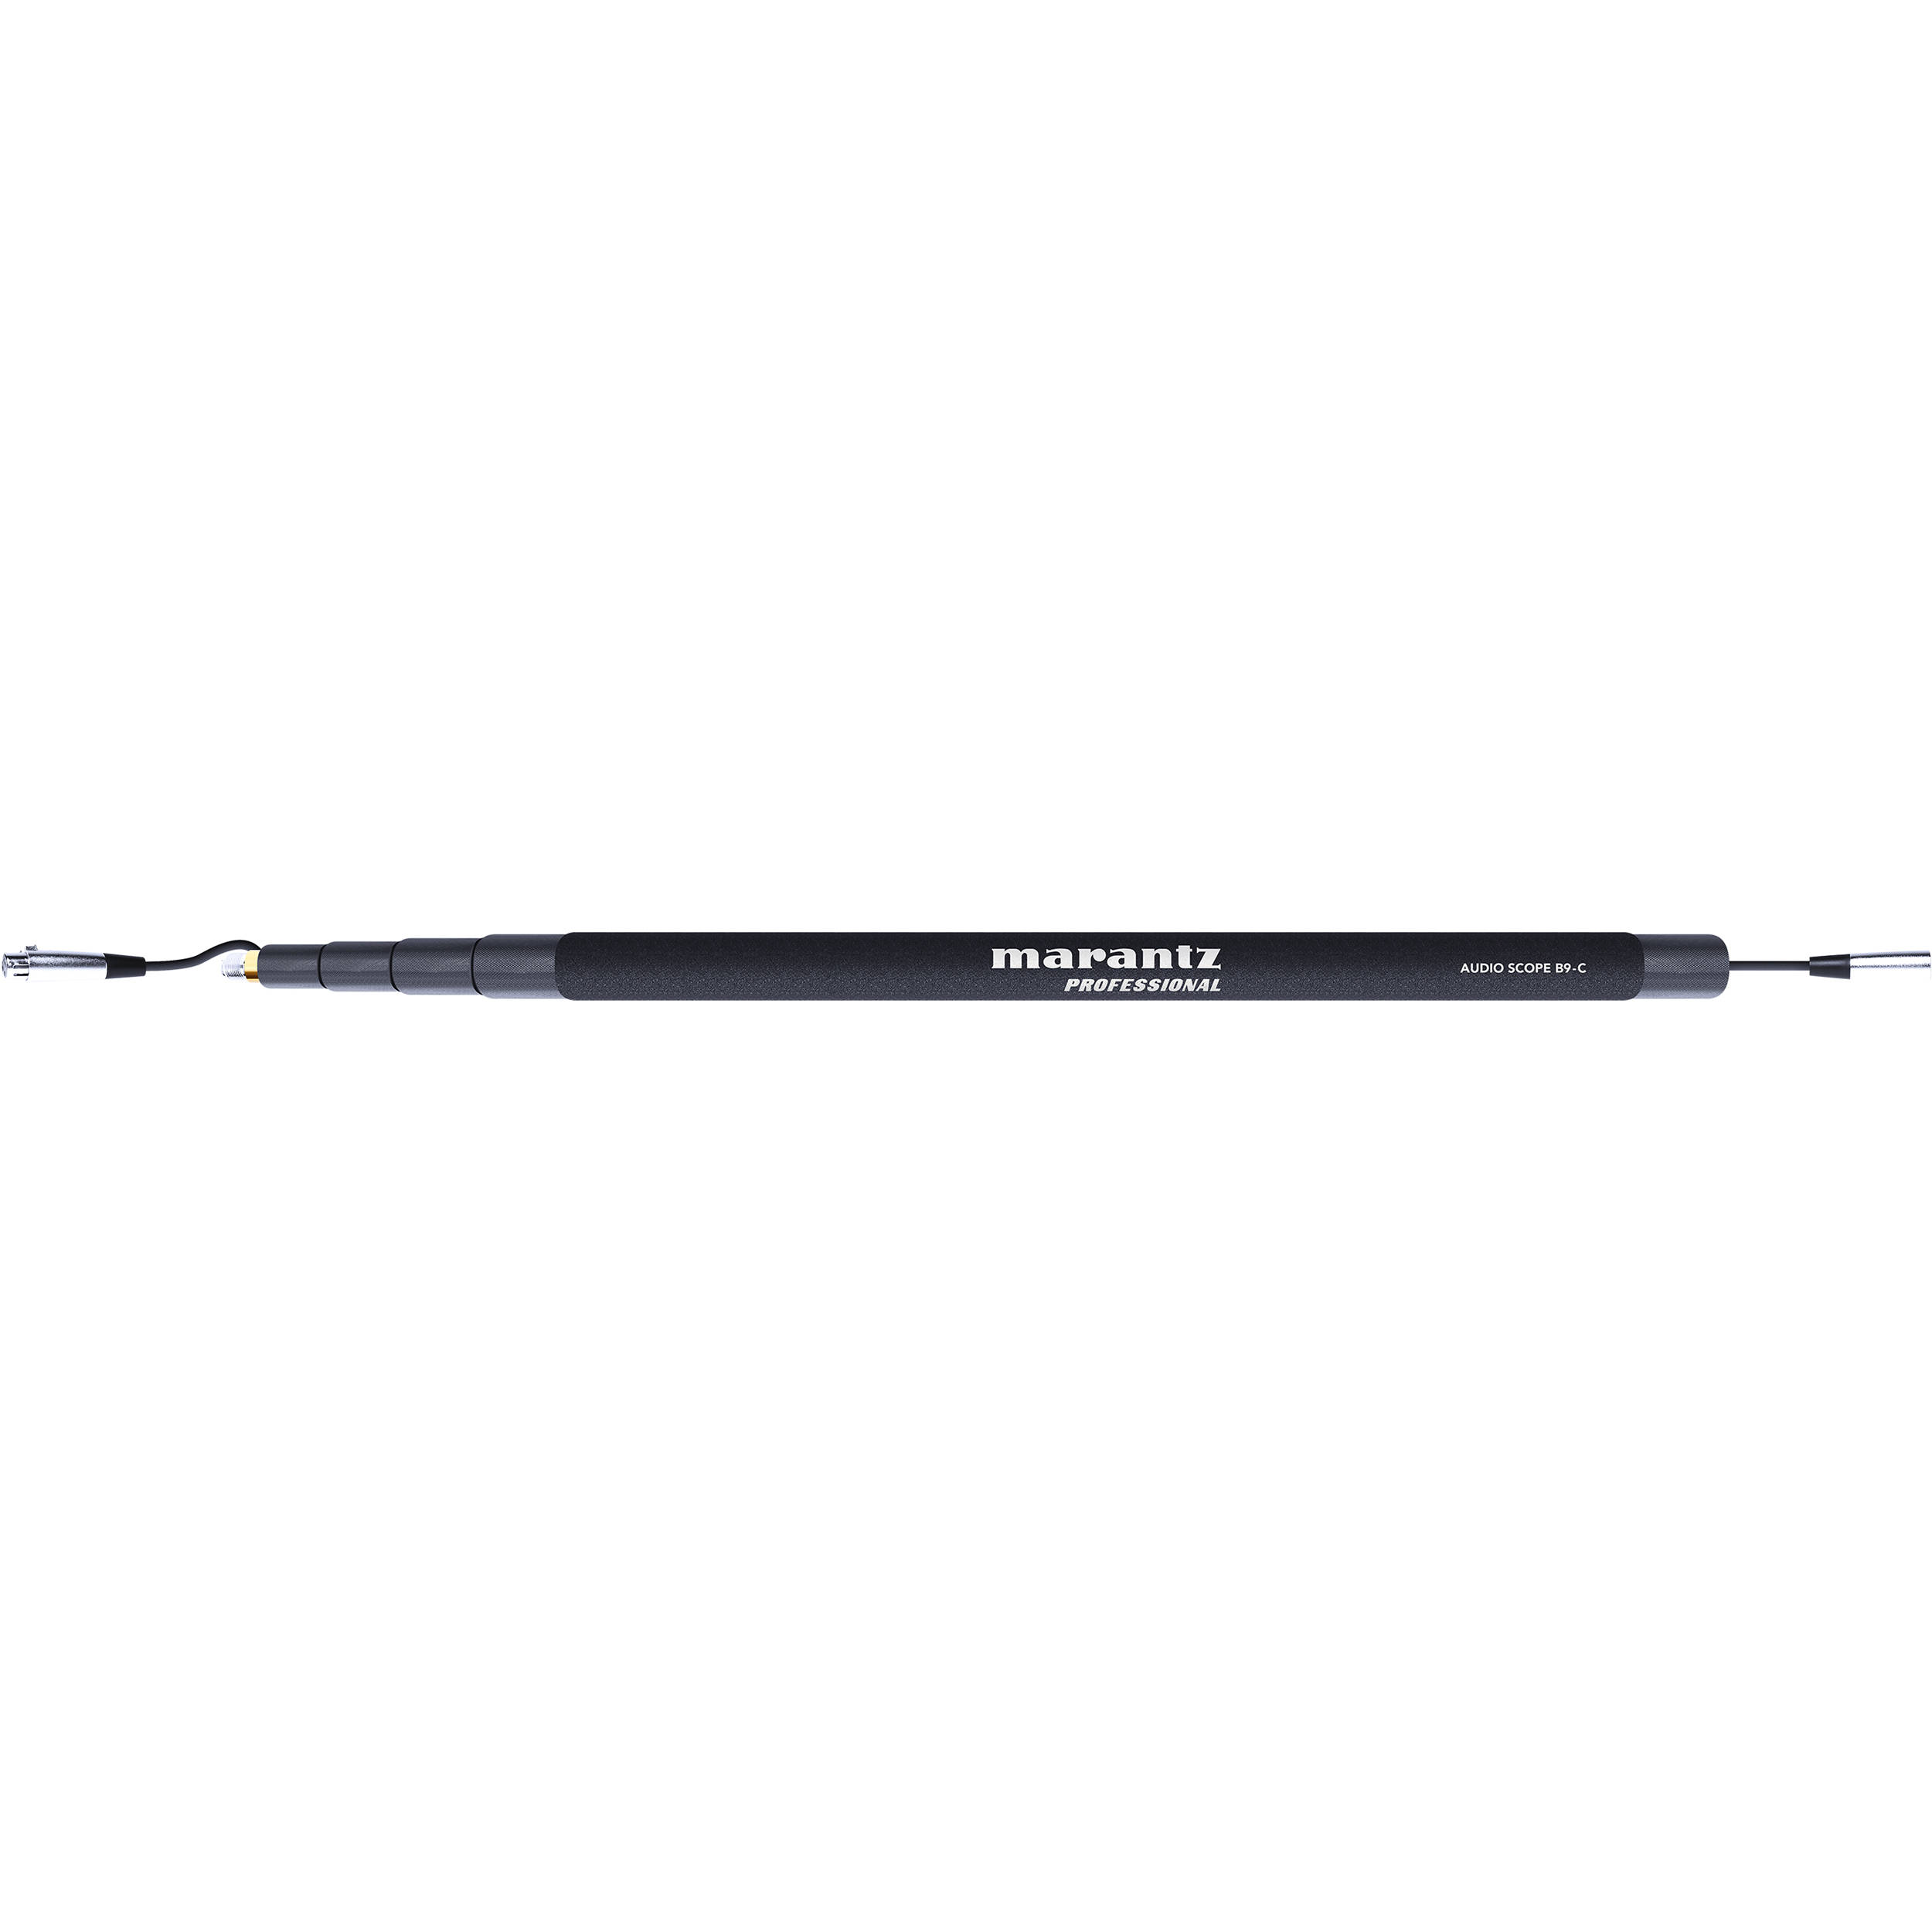 Marantz, Pro, 9-foot, boom, pole, 4, extendable, sections, Foam, handle, for, comfort, Velc,